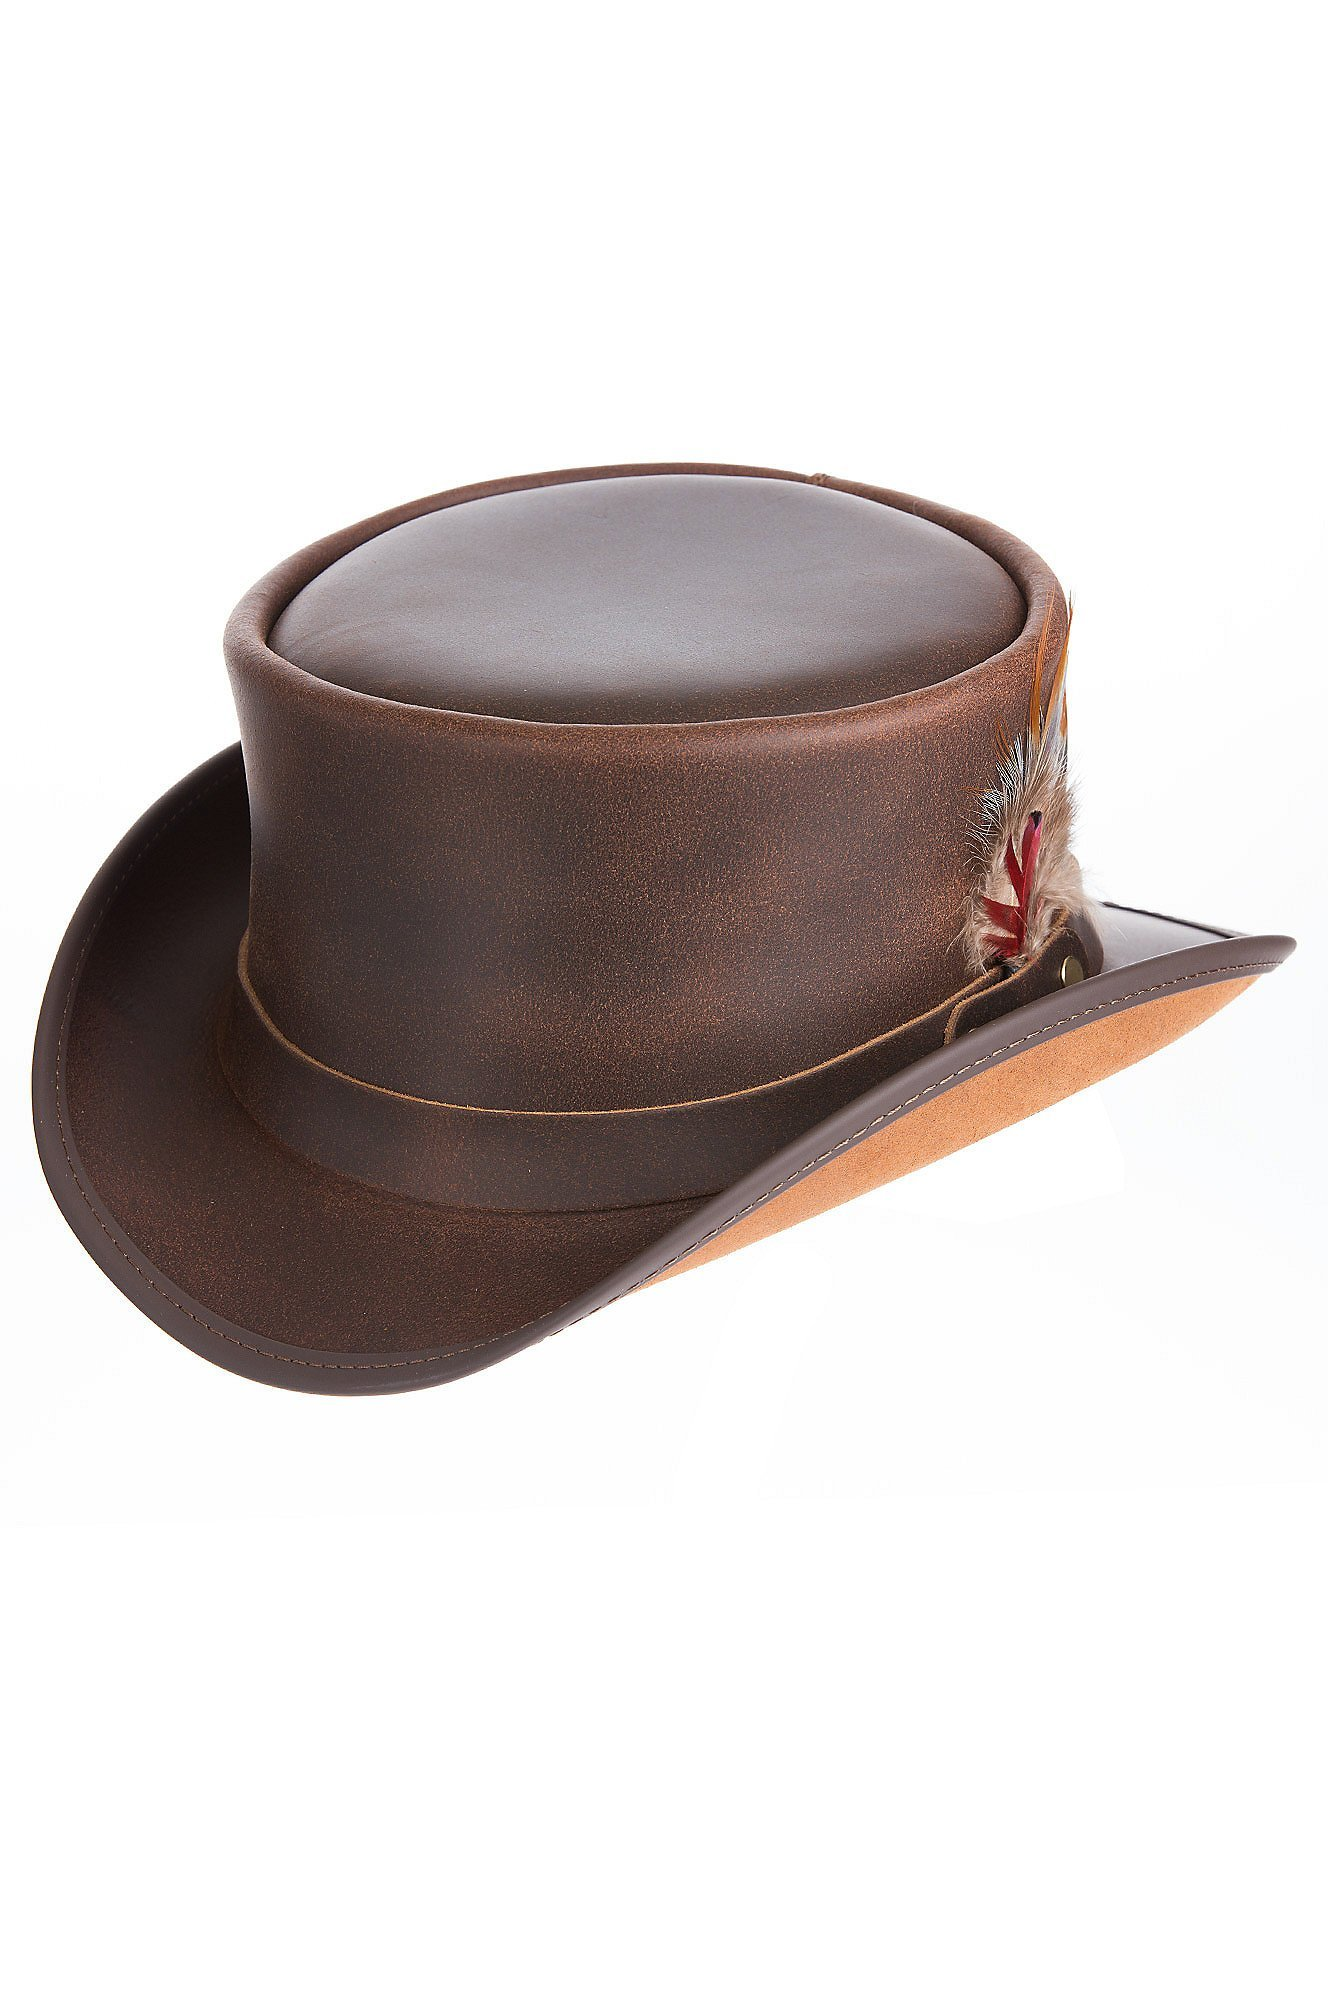 Steampunk Victorian Marlow Leather Top Hat, Brown, Size Medium (7)